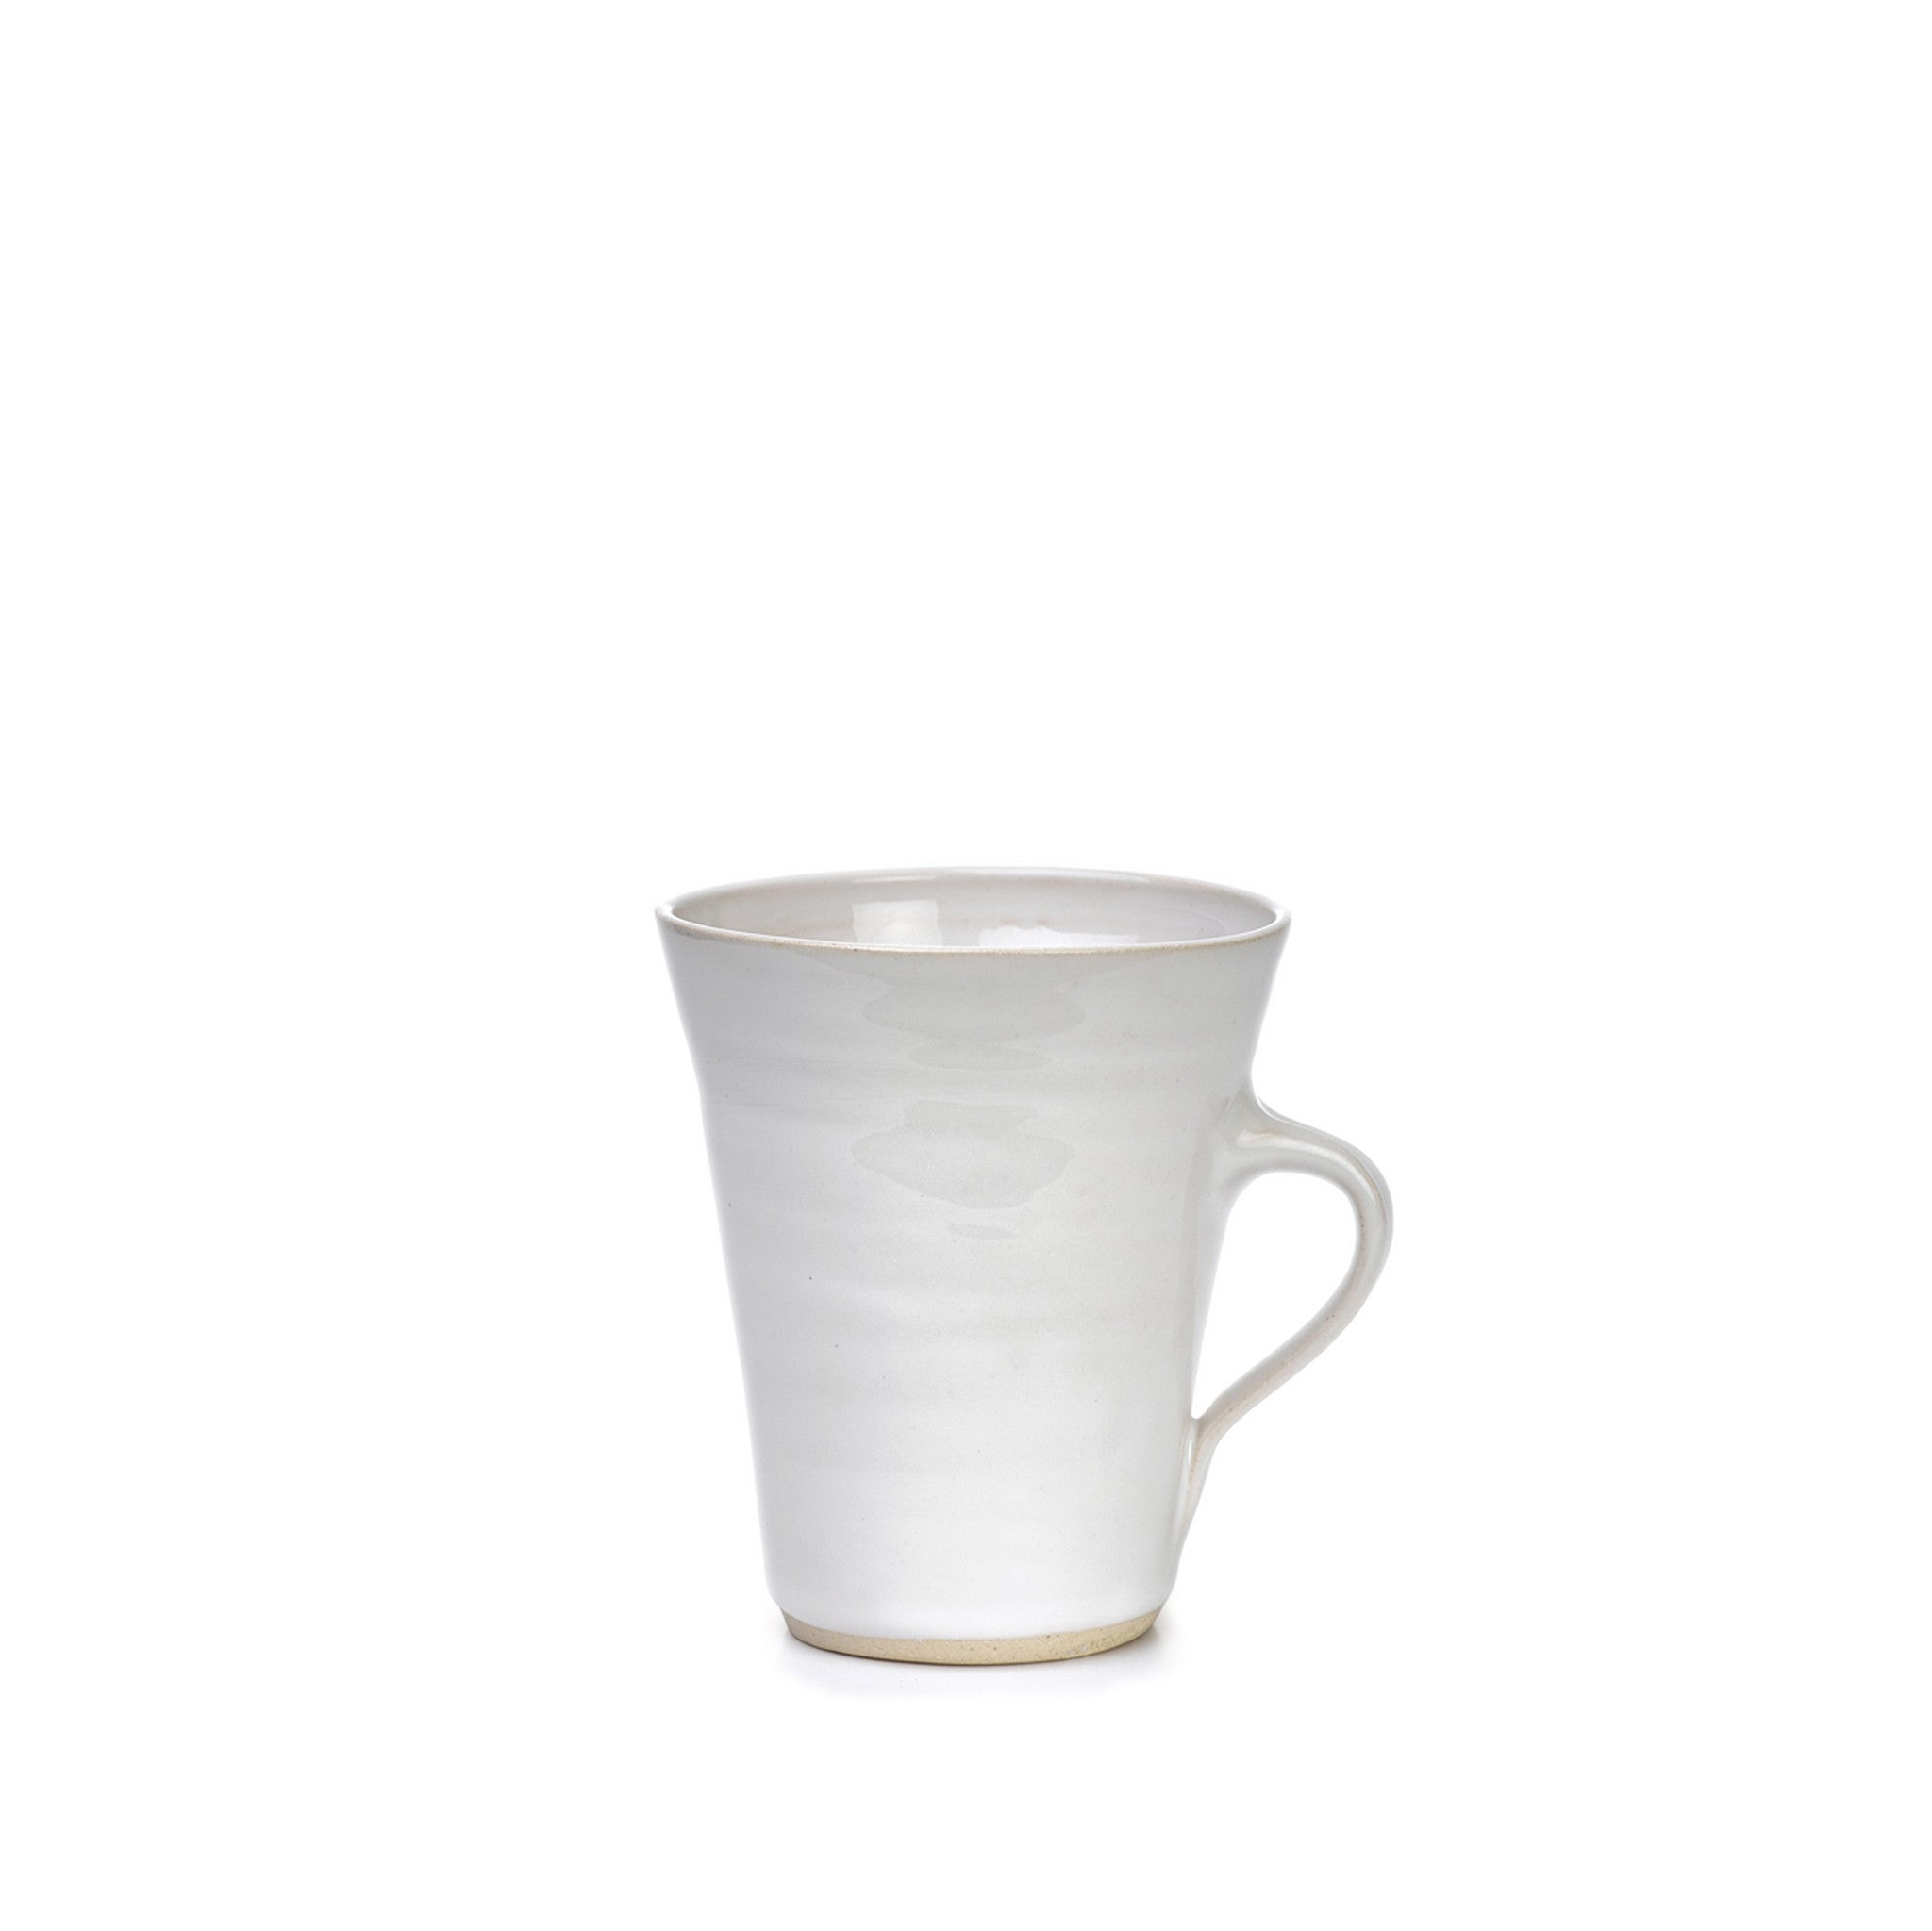 Wonki Ware Mug in White